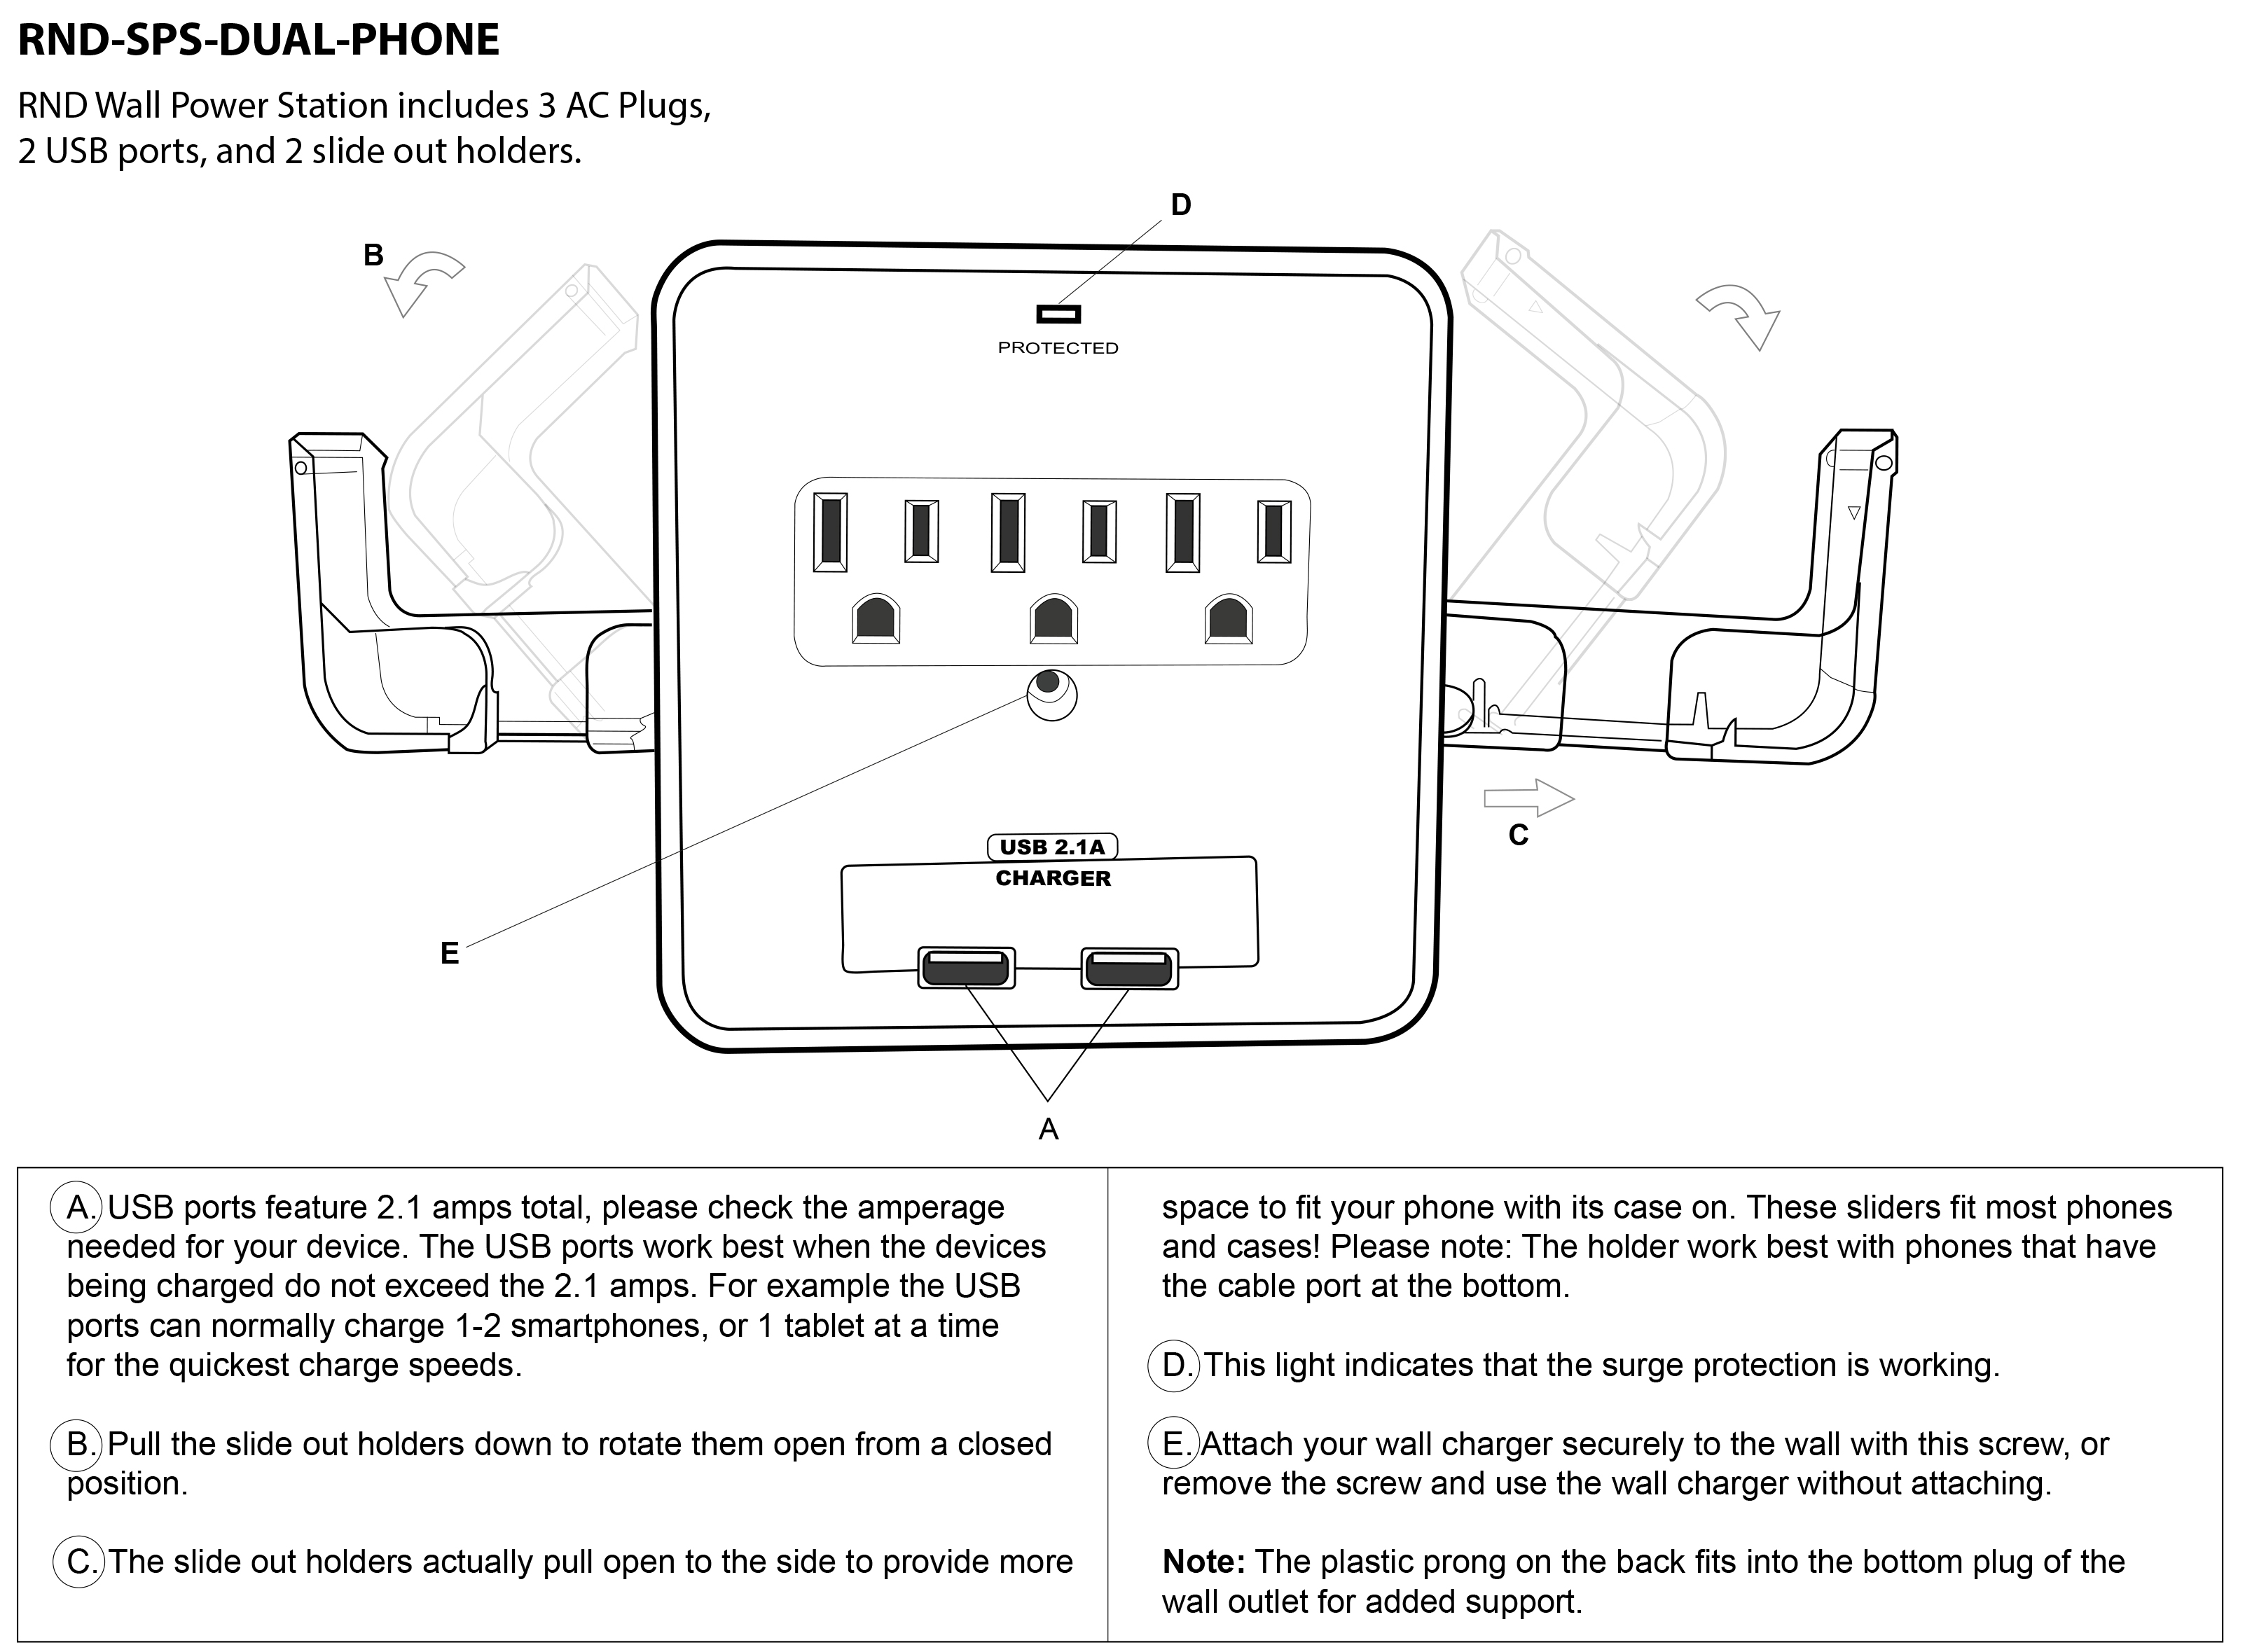 instruction manual for rnd wall charger rnd sps dual phone rnd rh rndpowersolutions1 zendesk com meridian phone instruction manual avaya phone instruction manual